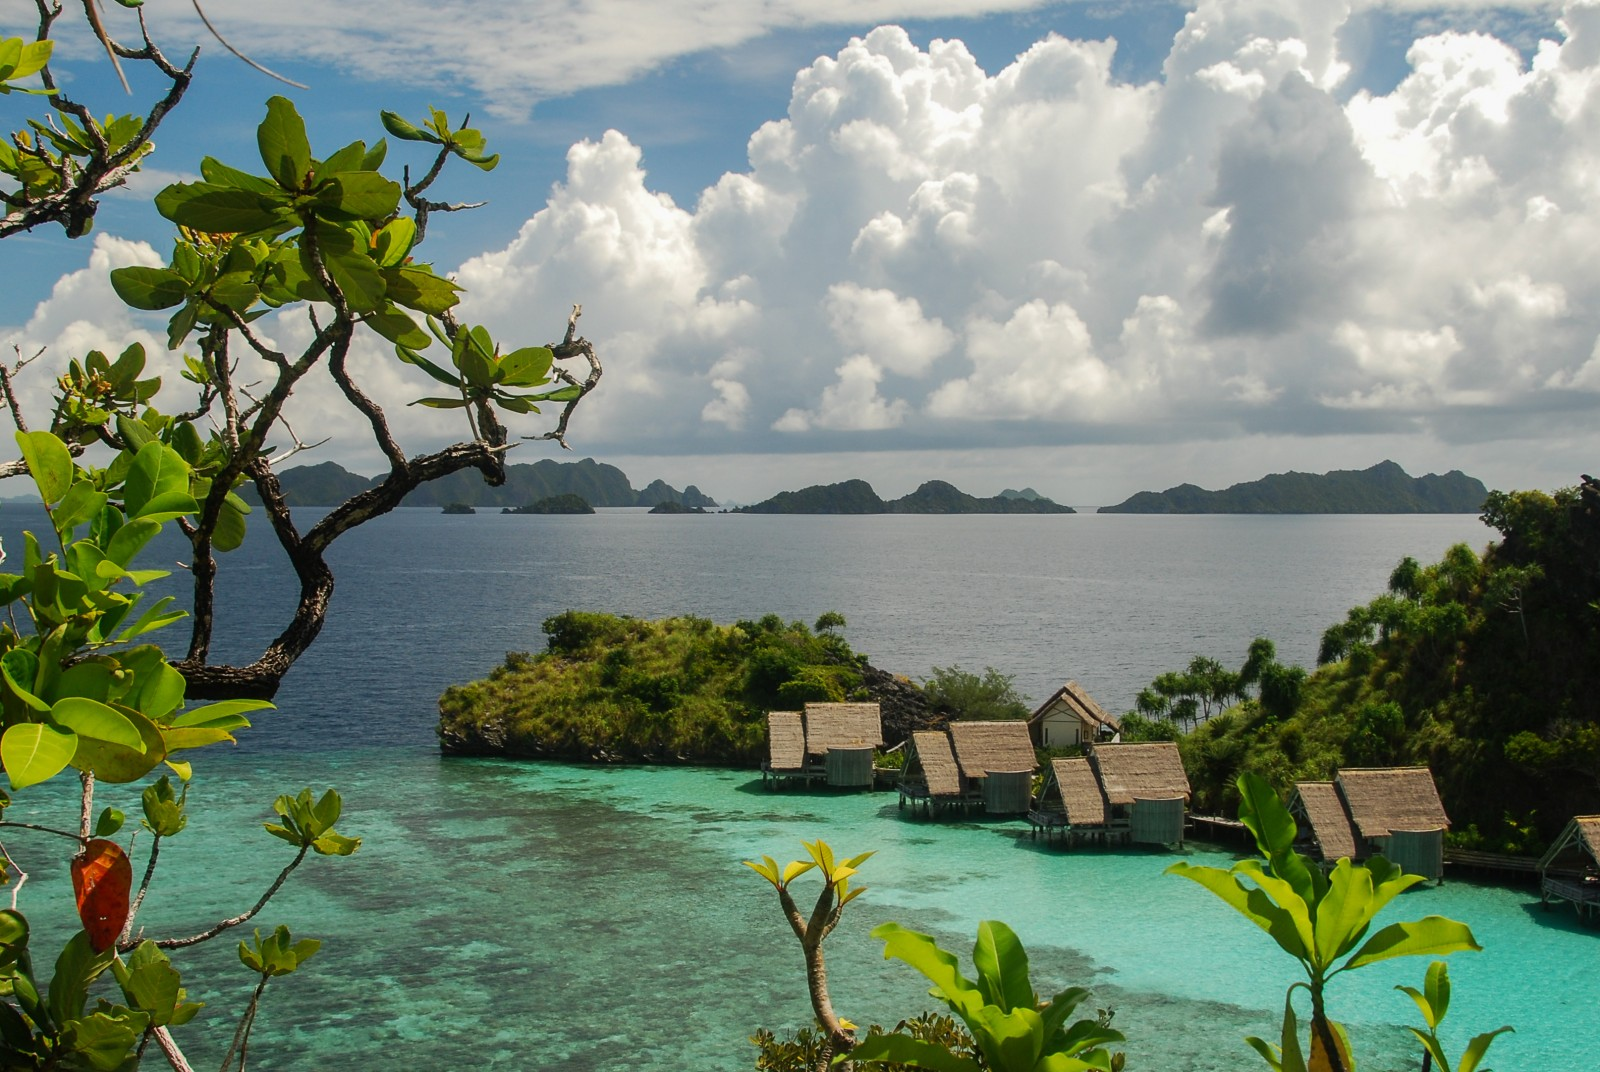 misool-eco-resorts-over-the-water-cottages-photo-by-misool-eco-resort.jpg